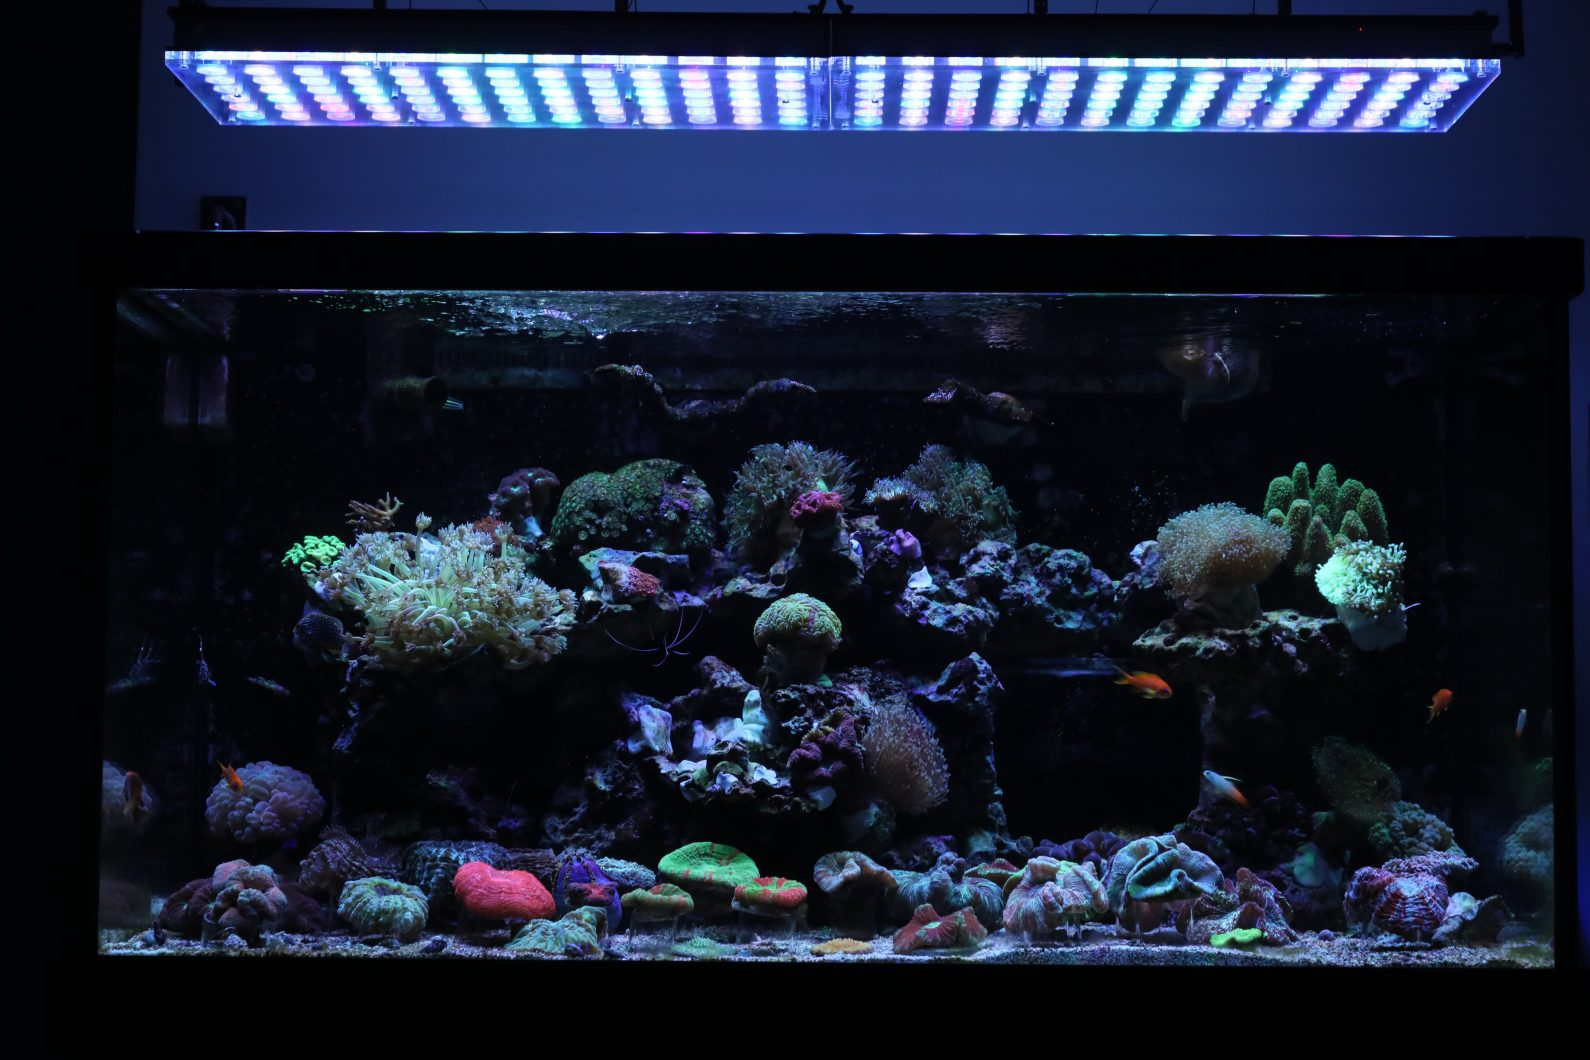 Orphek_Reef_Aquarium_LED_Light_Atlantik_v4_best_LED_Aquarium_lighting25